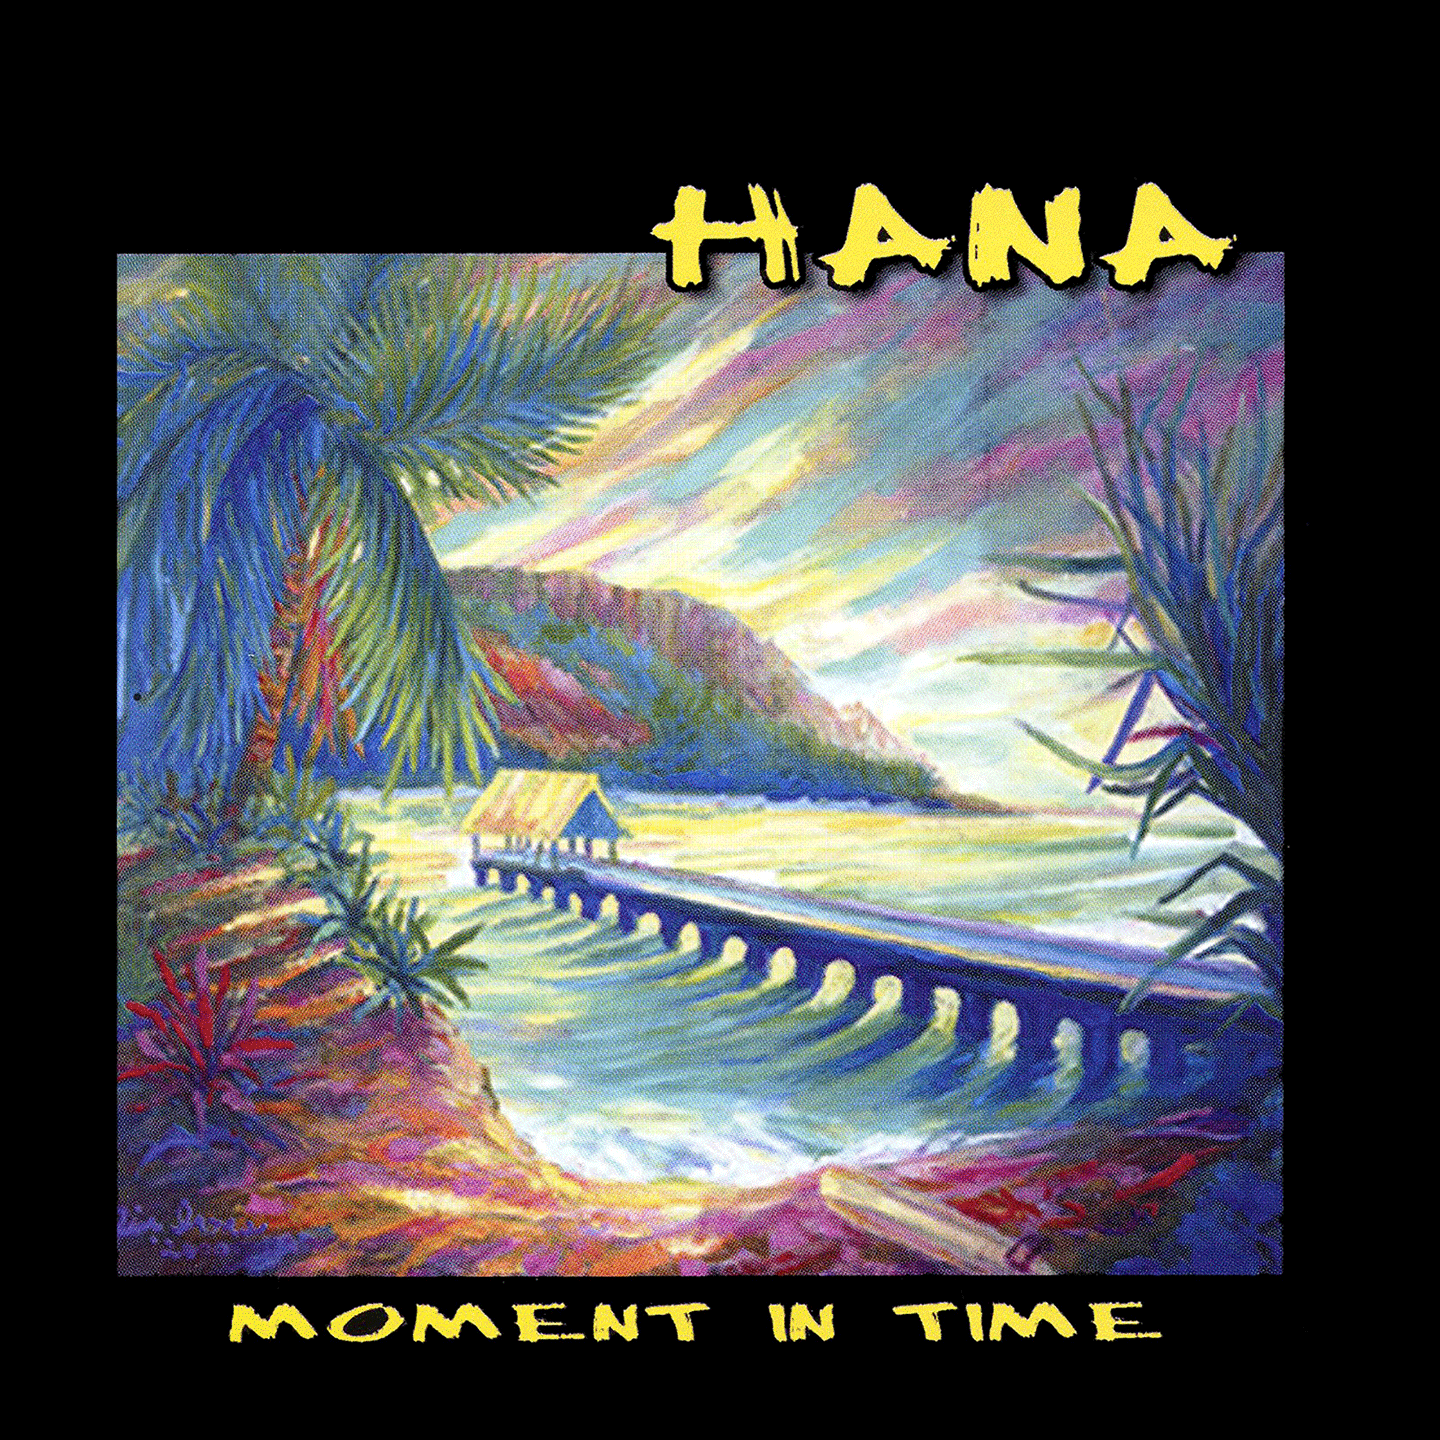 'Moment in Time' by Hana